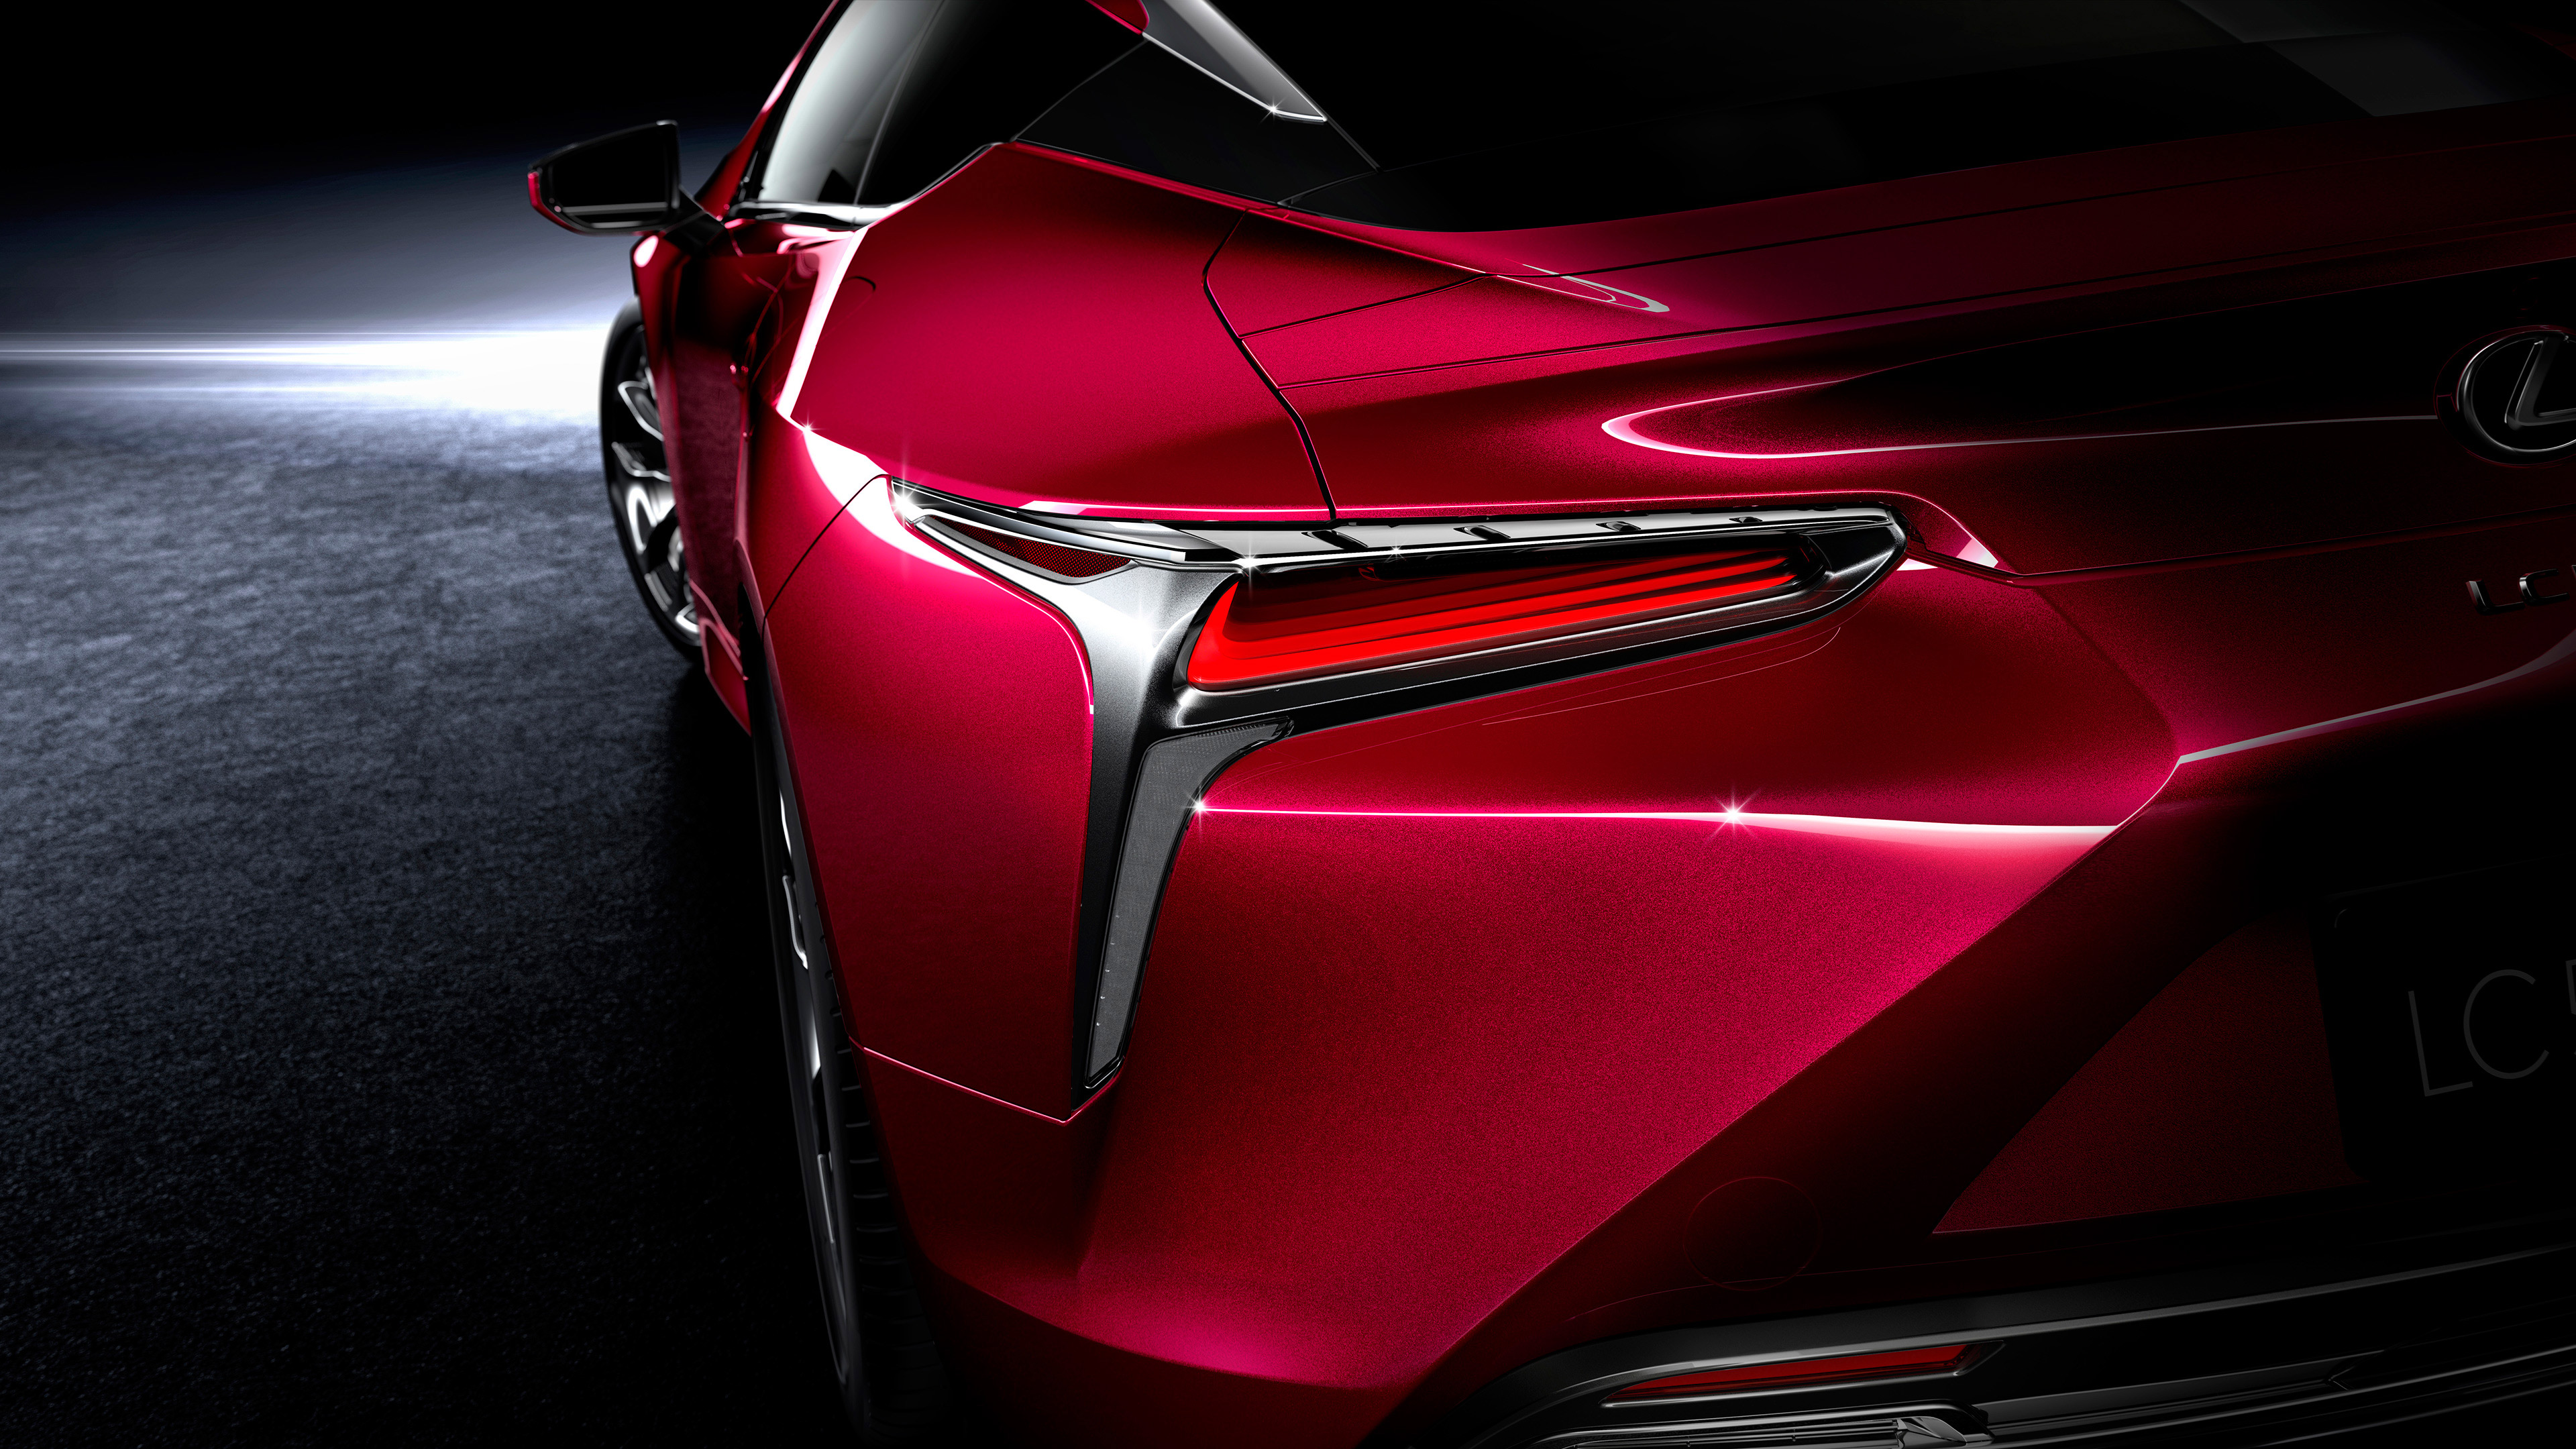 S Class Coupe >> Lexus LC500 Wallpapers - Carfeed